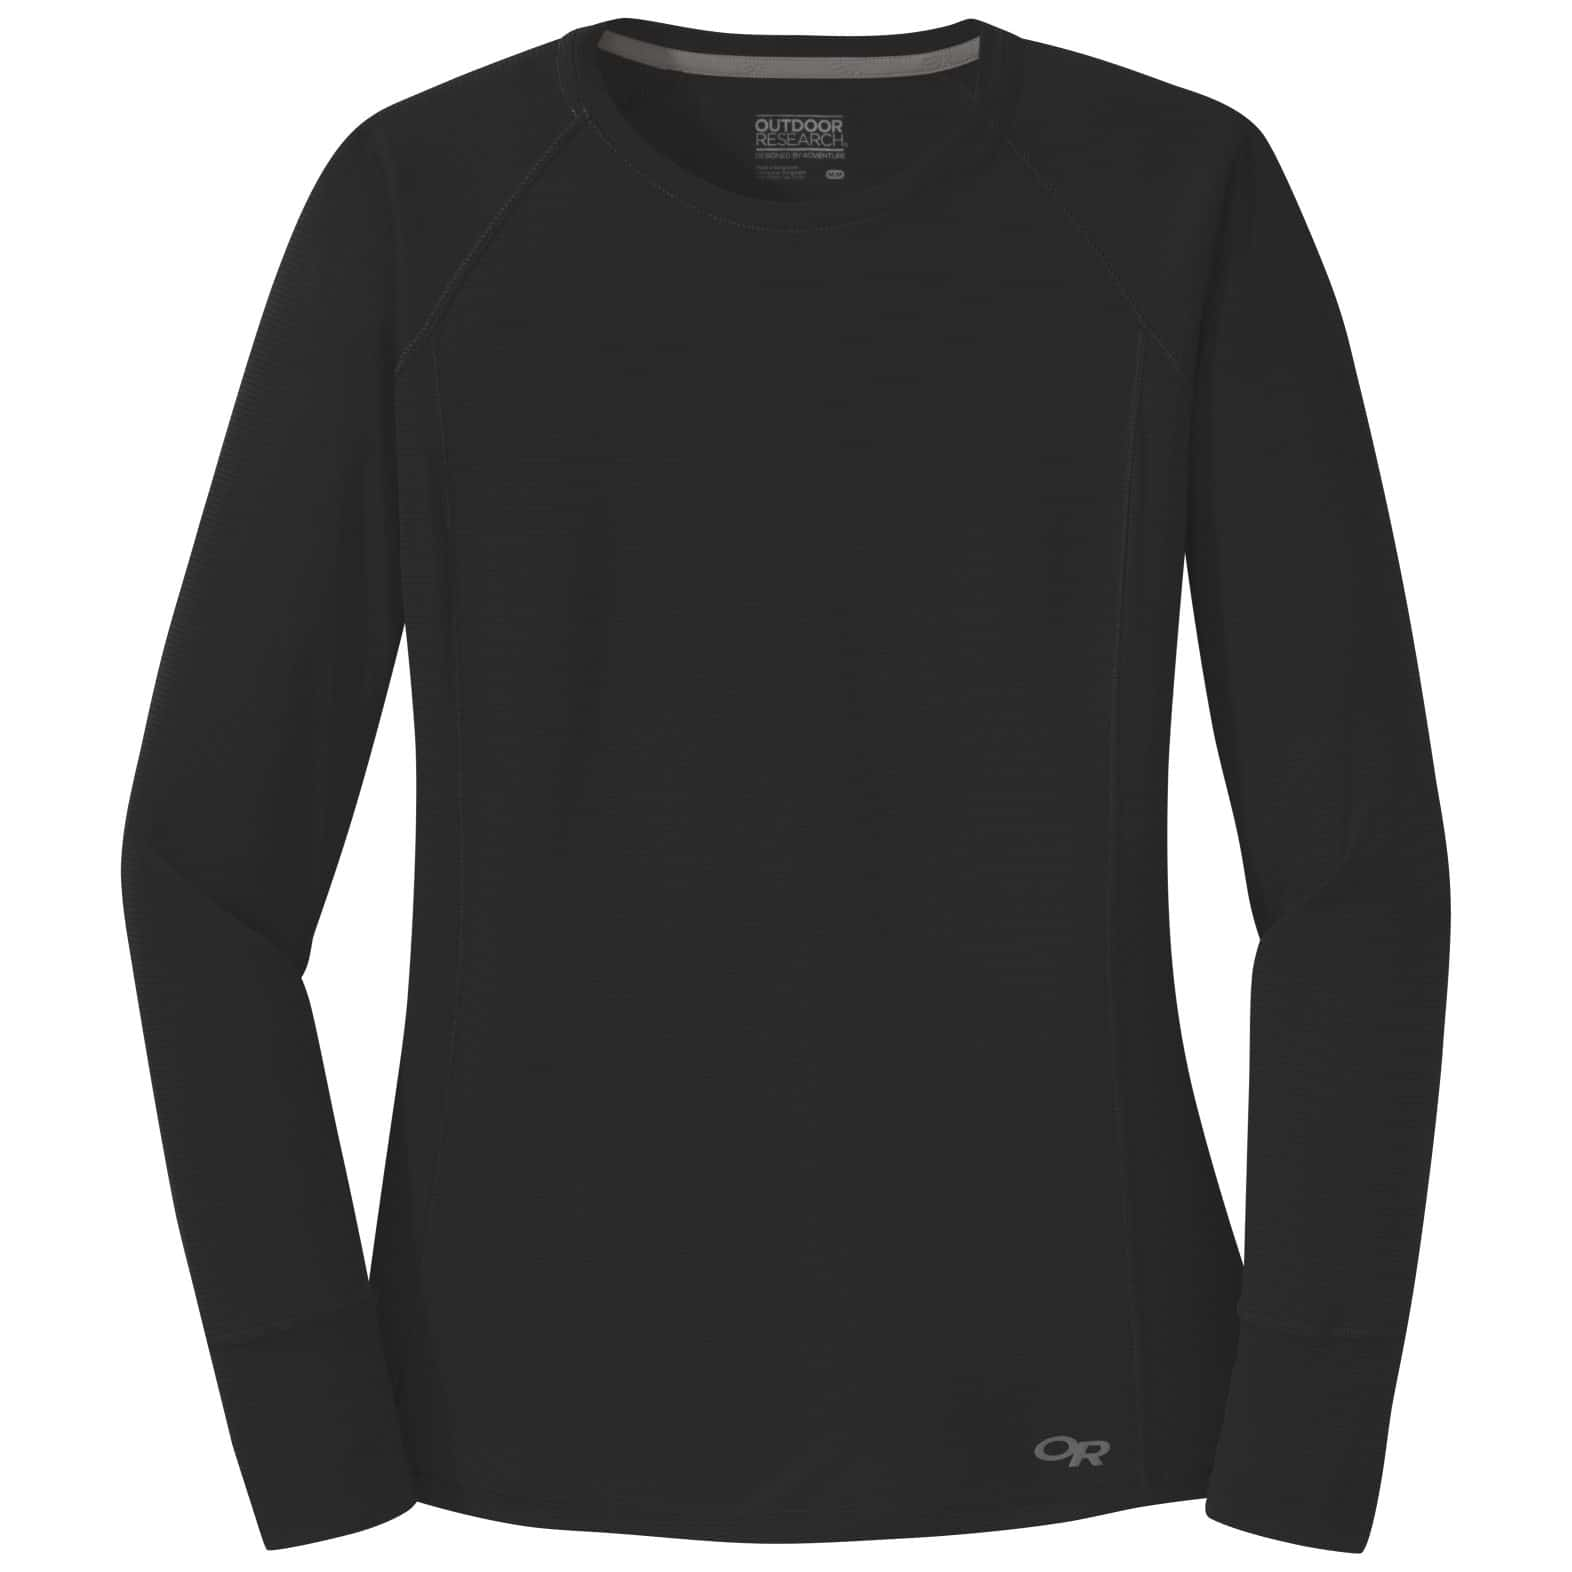 Outdoor Research-Echo Long-Sleeve Tee - Women's